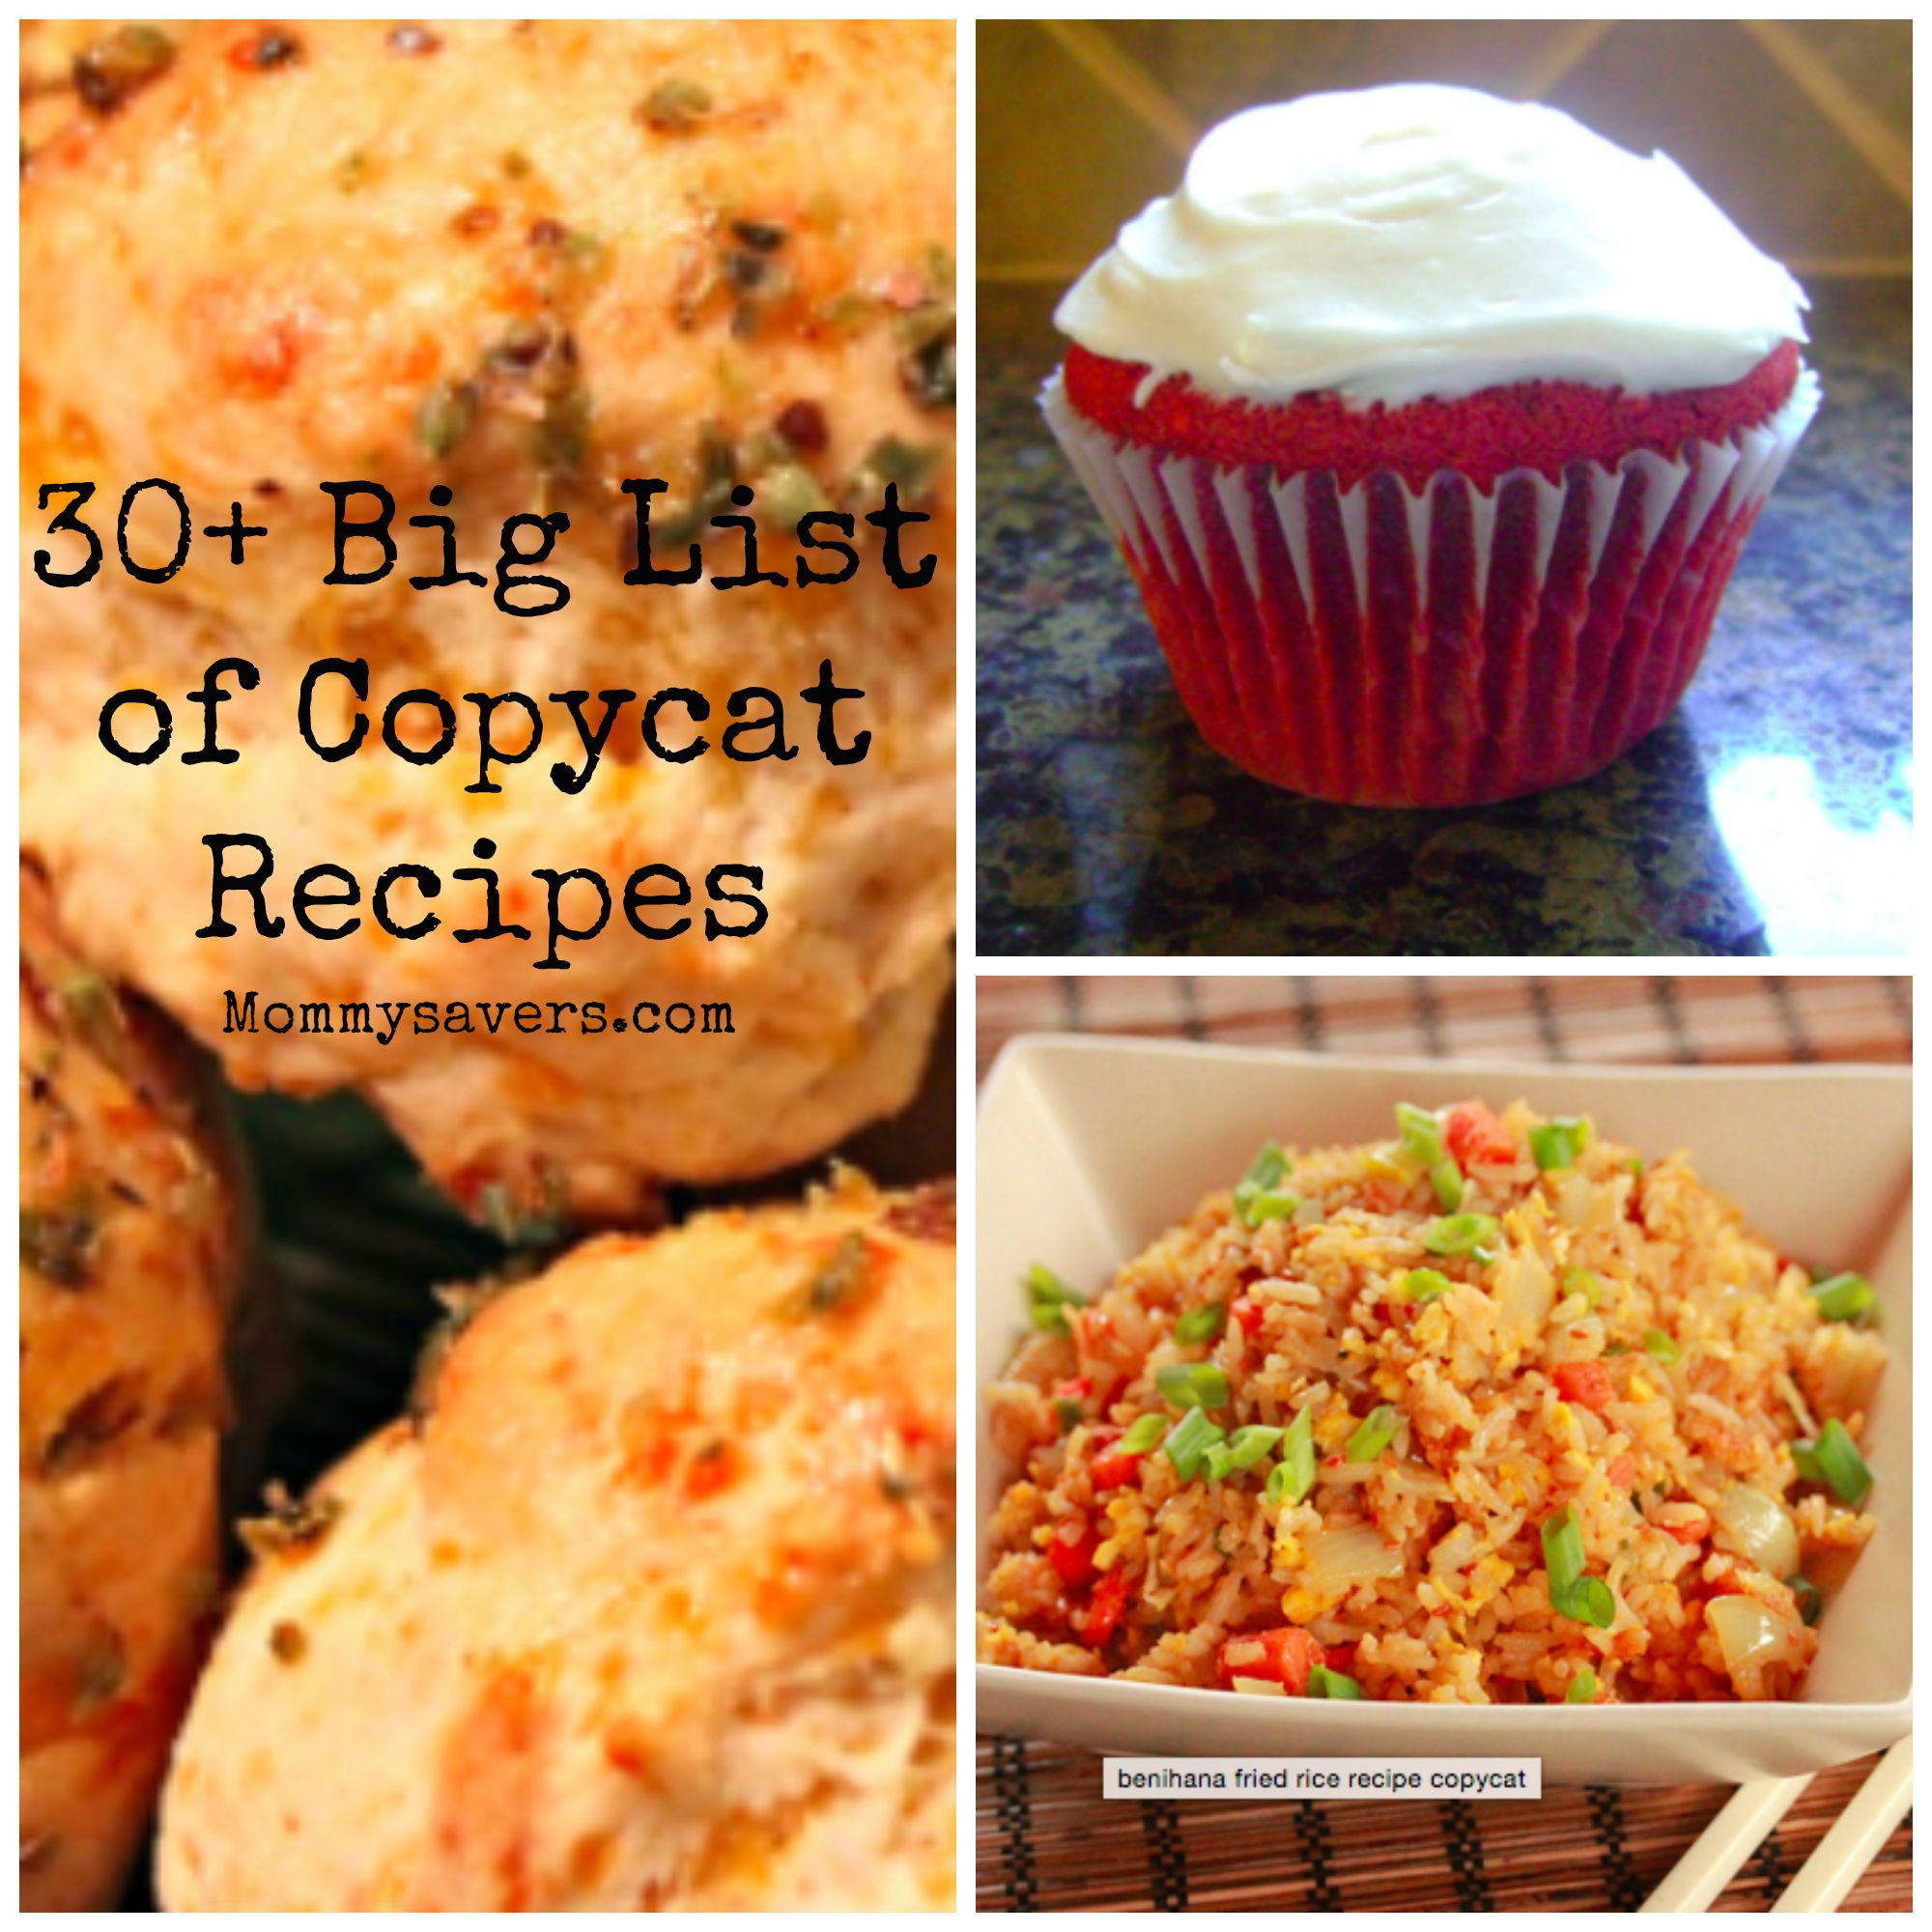 30+ Copycat Recipes